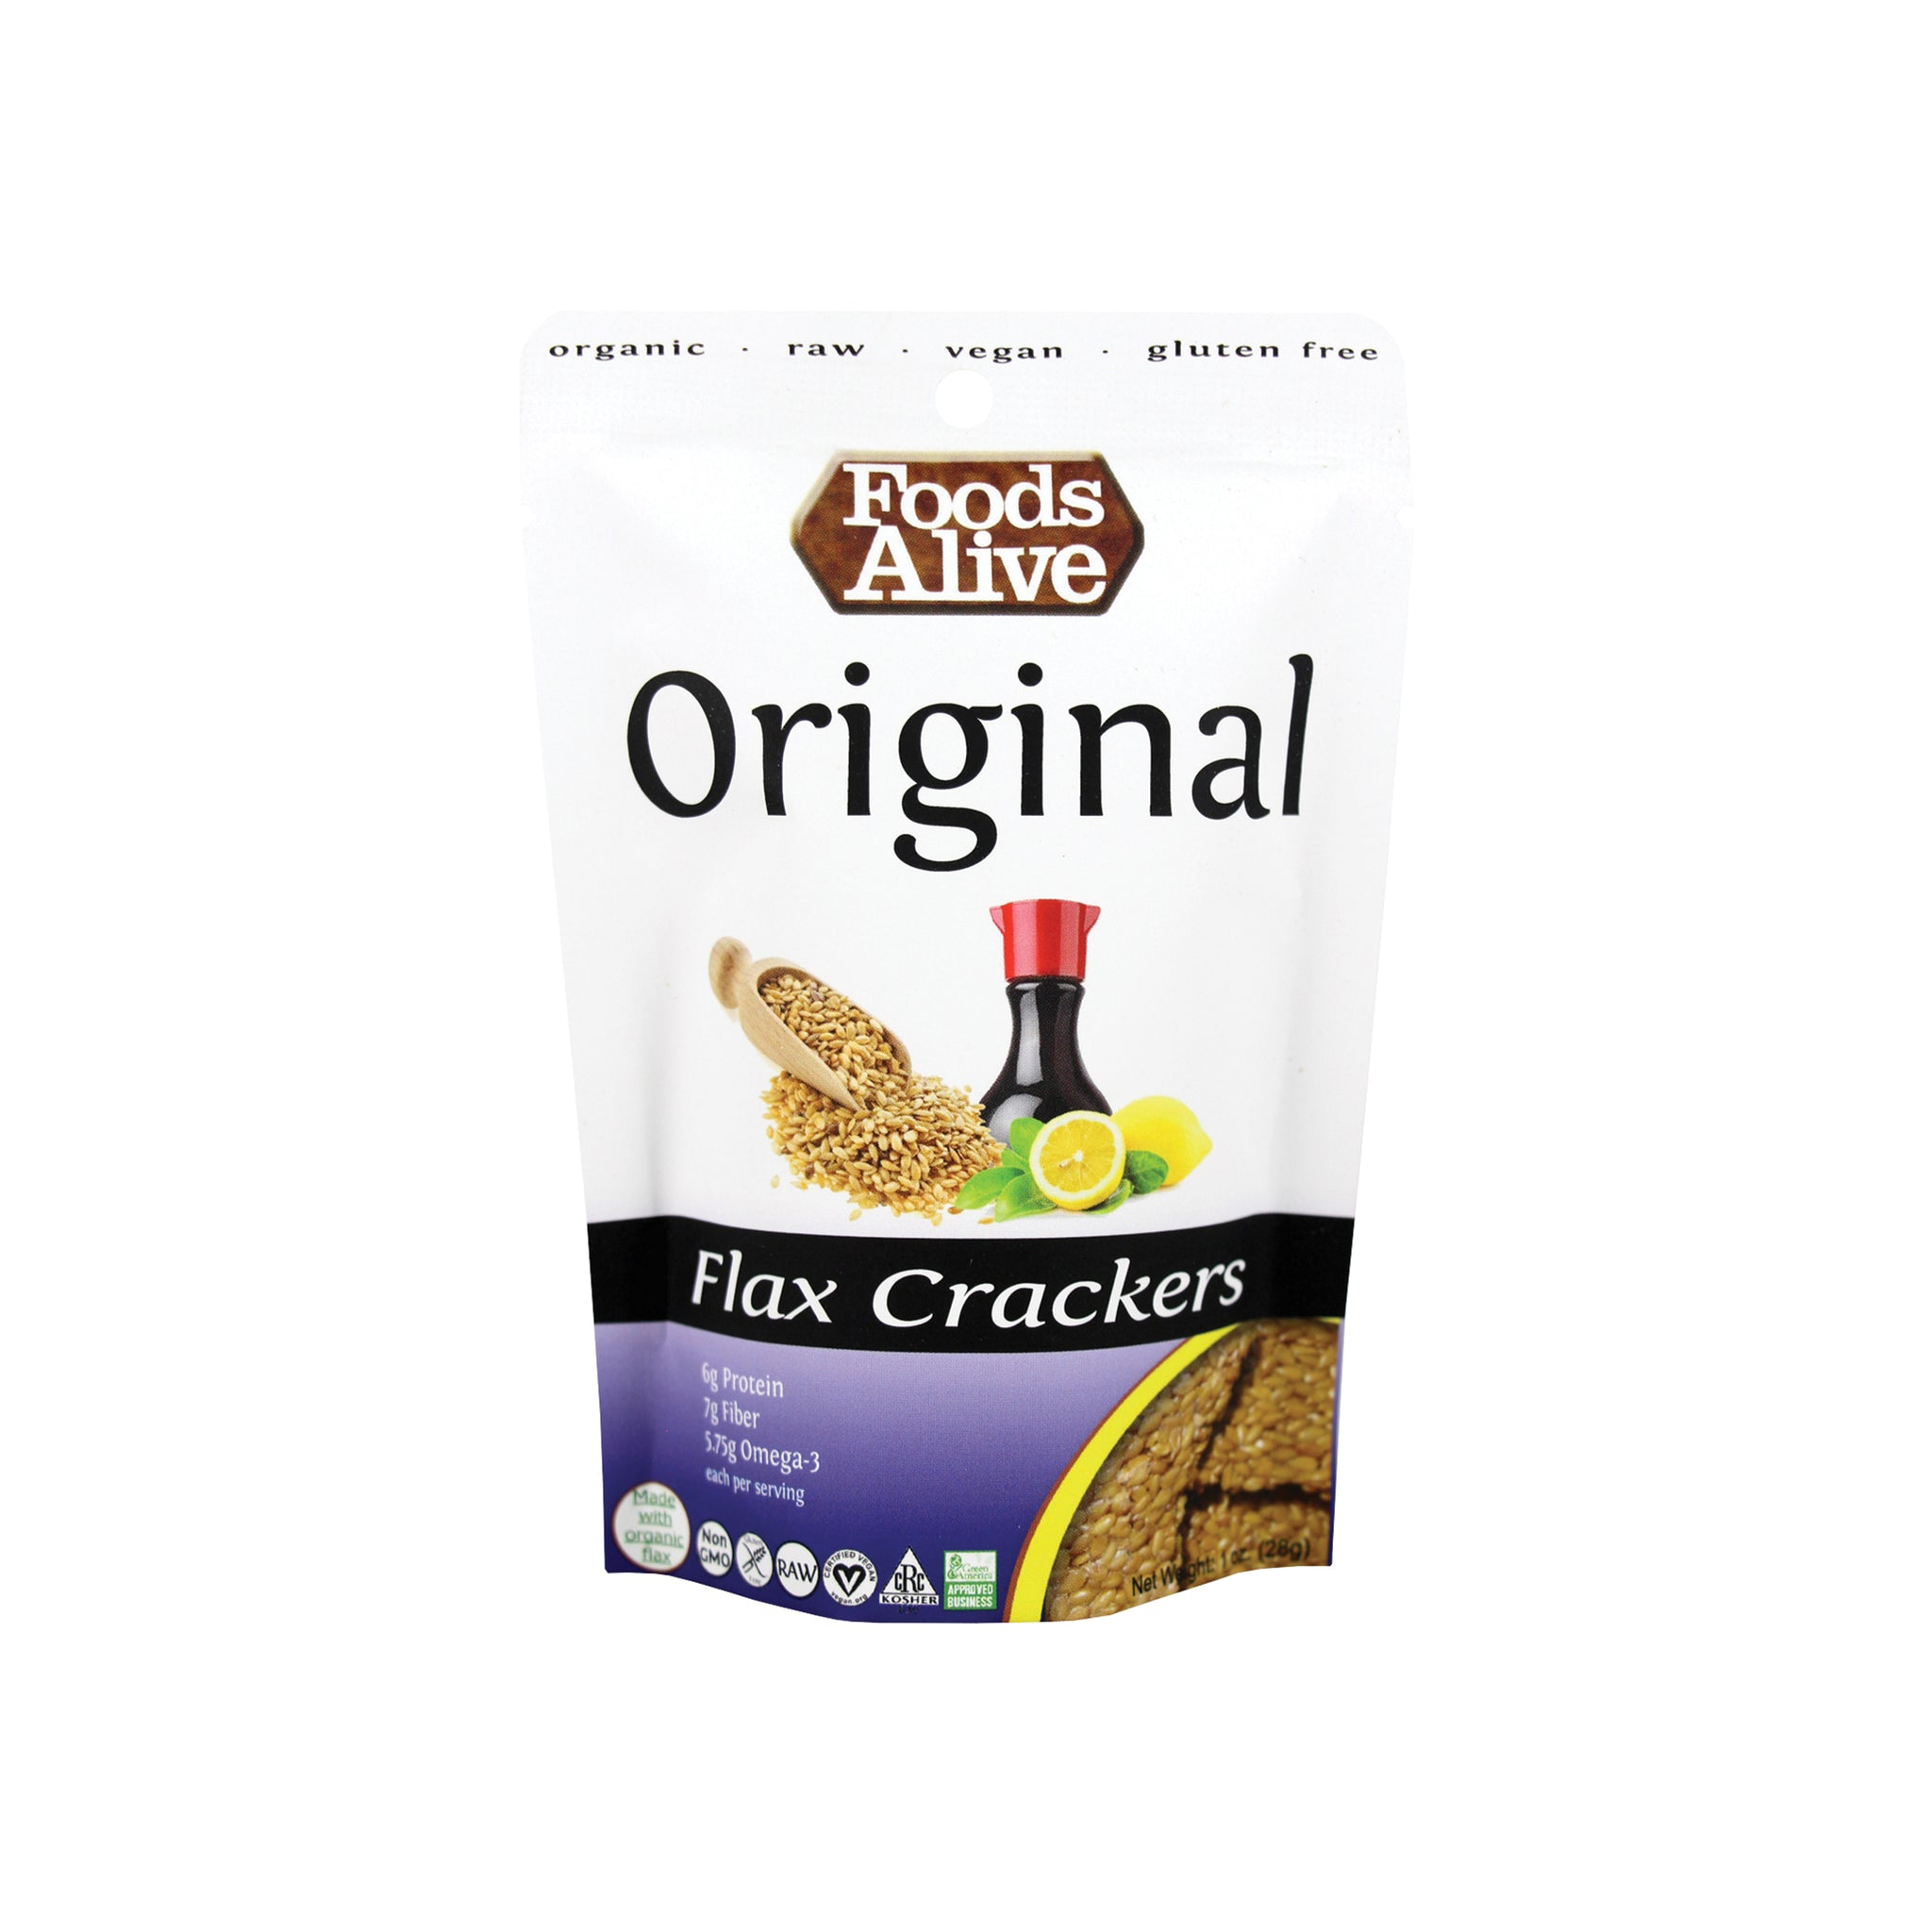 Foods Alive - Original Flax Crackers by Foods Alive - 1 oz